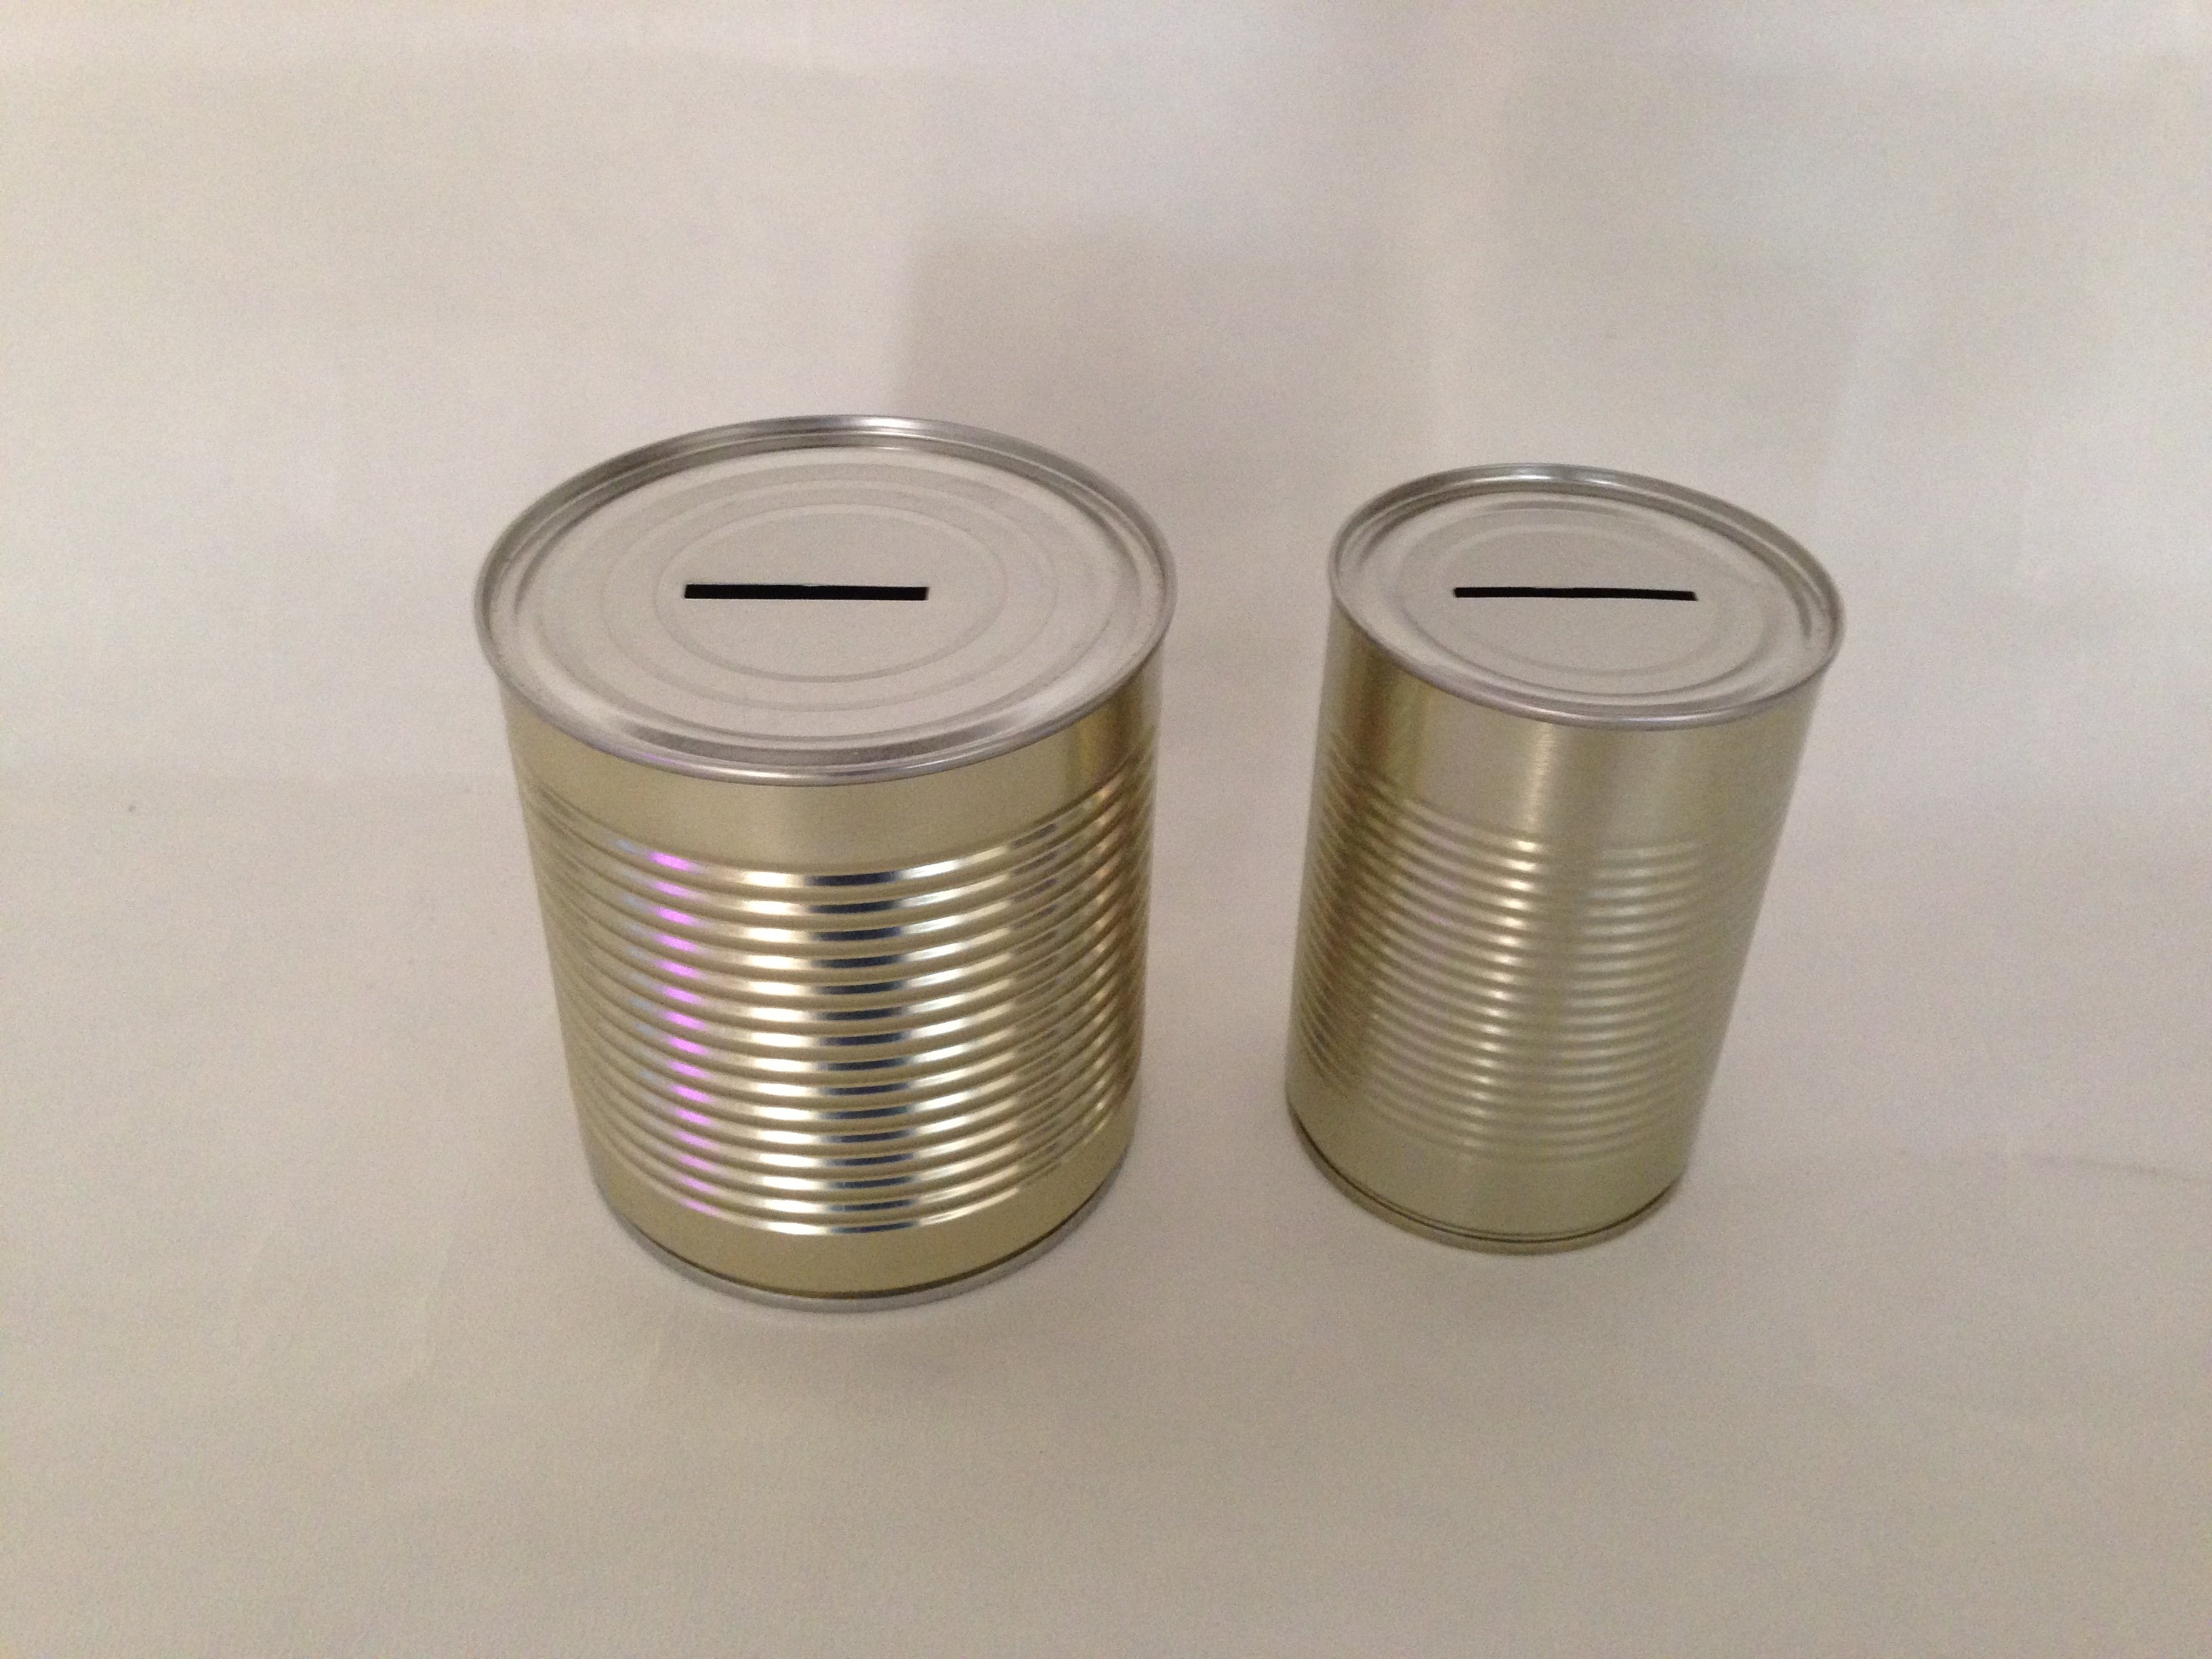 One Supplied by MONEY BOX I cant get in Tin Money Box